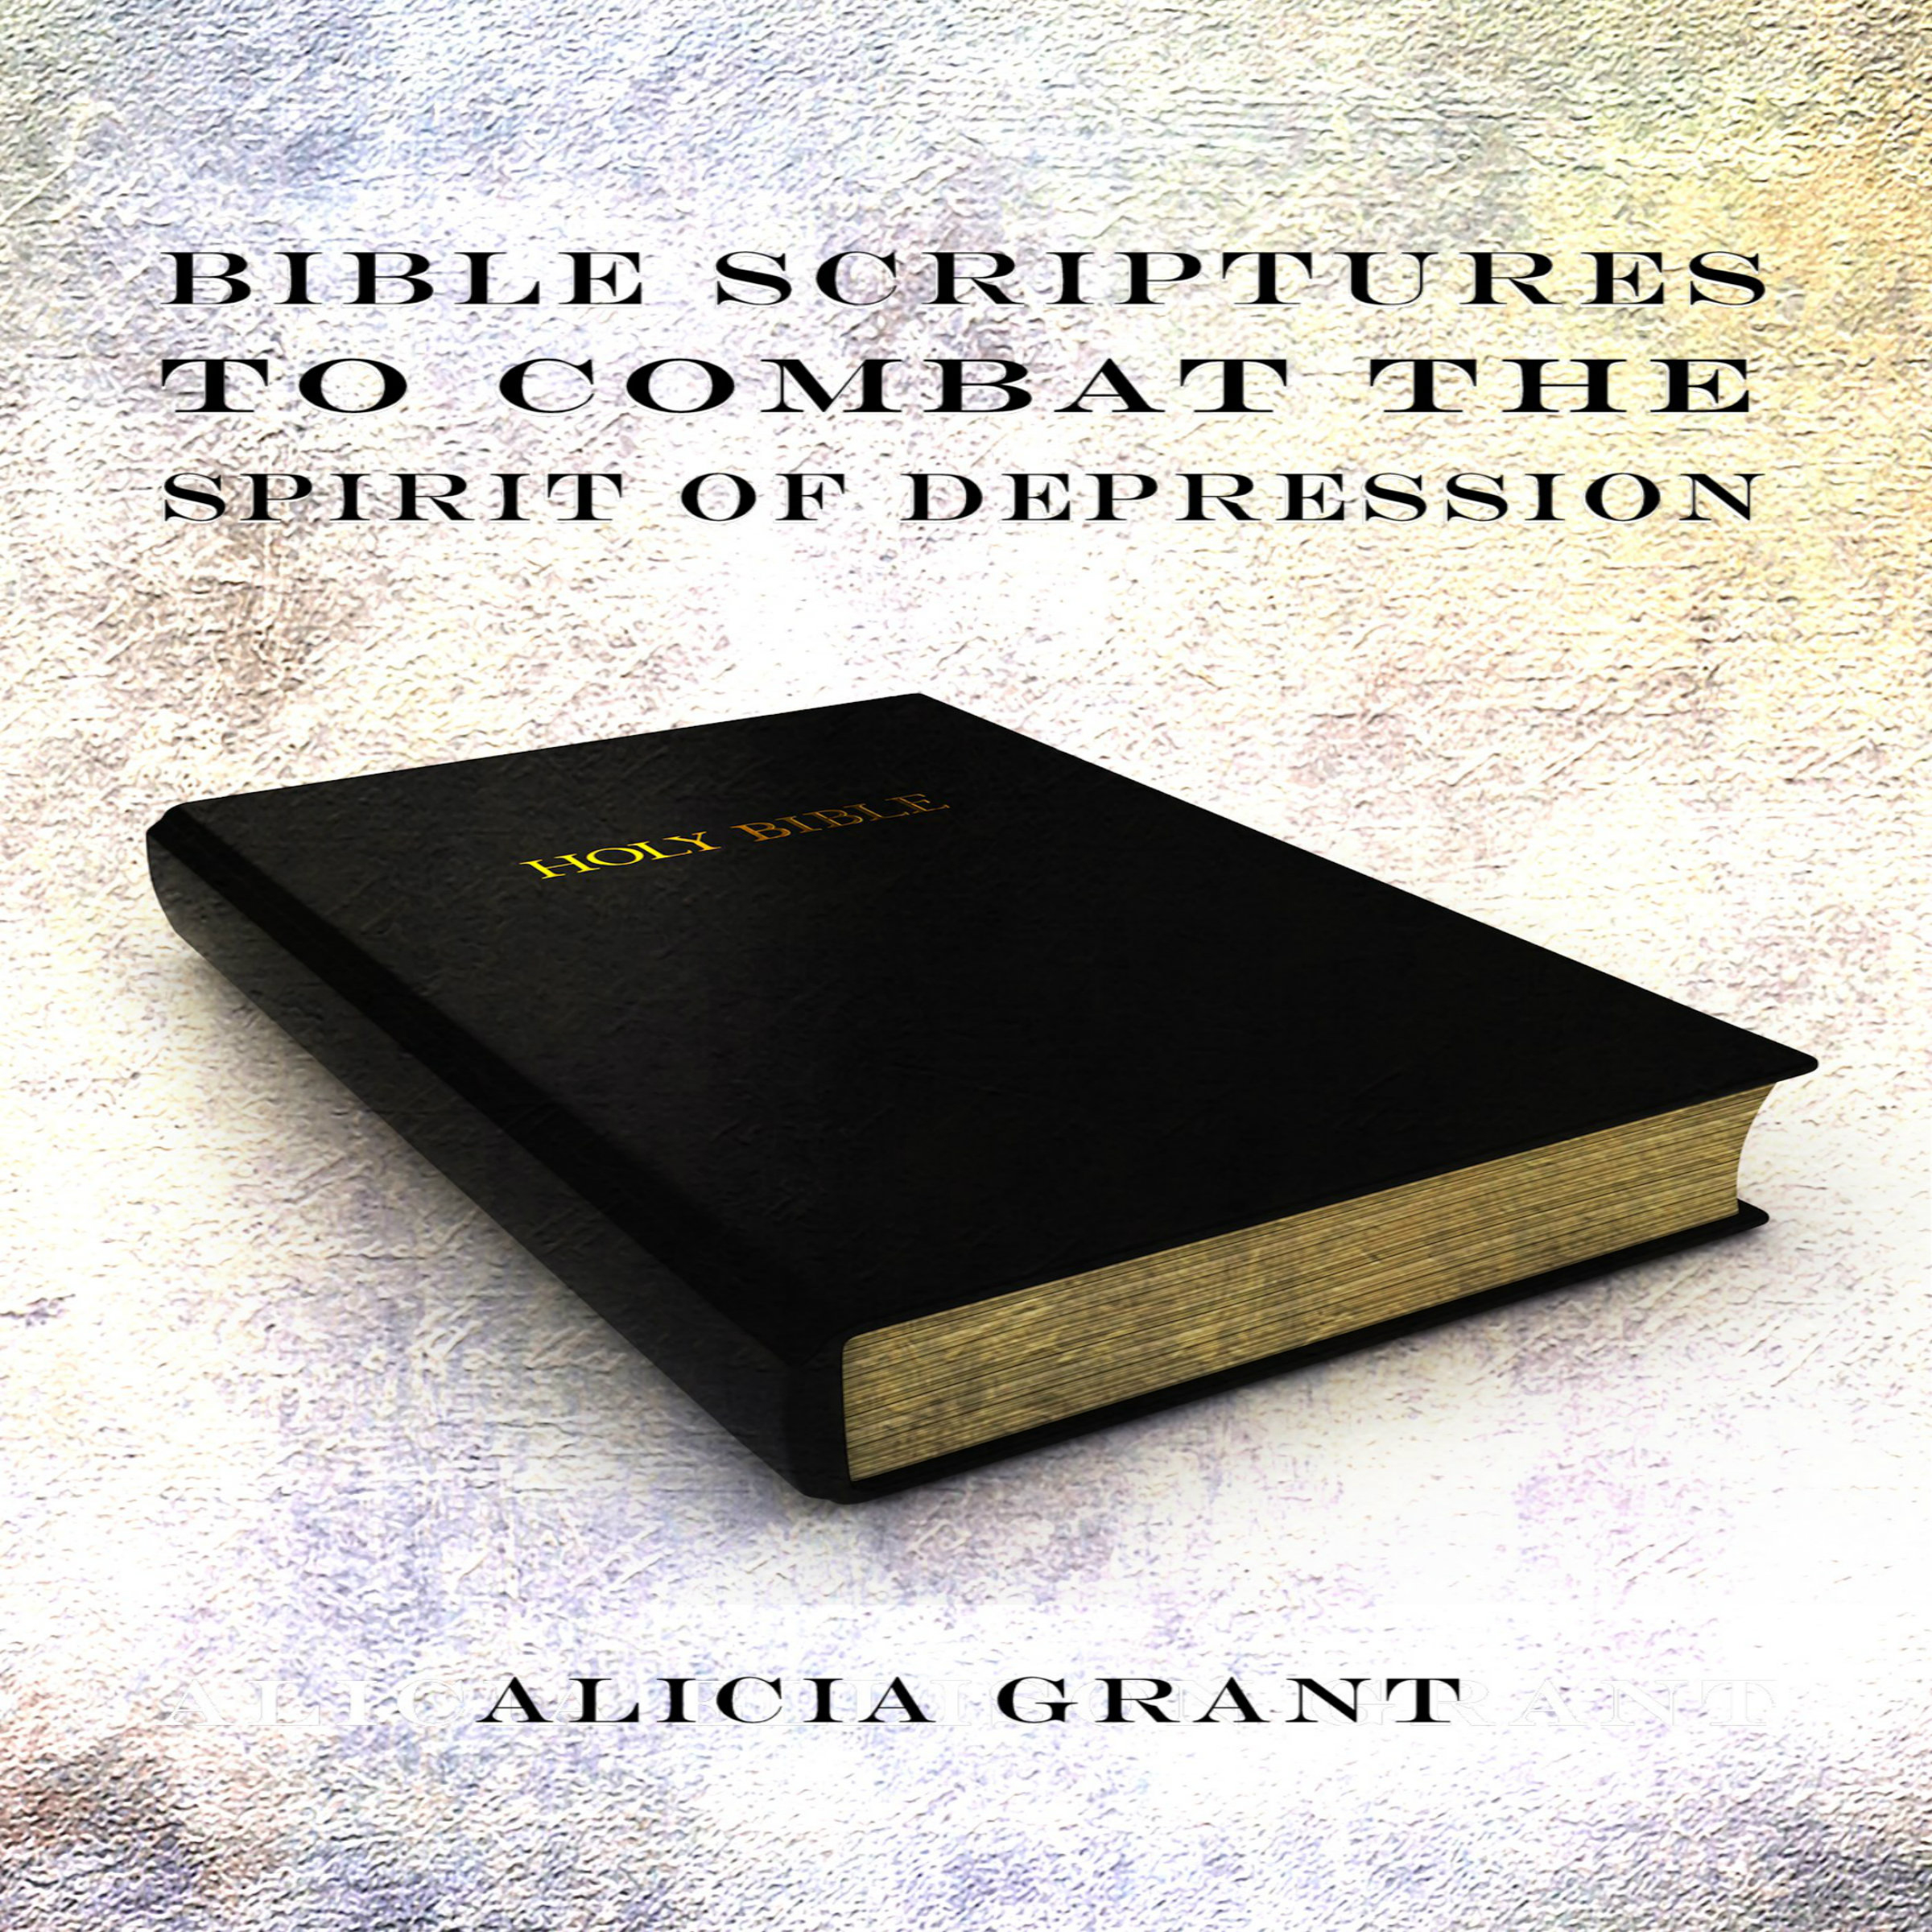 Bible Scriptures to Combat the Spirit of Depres...